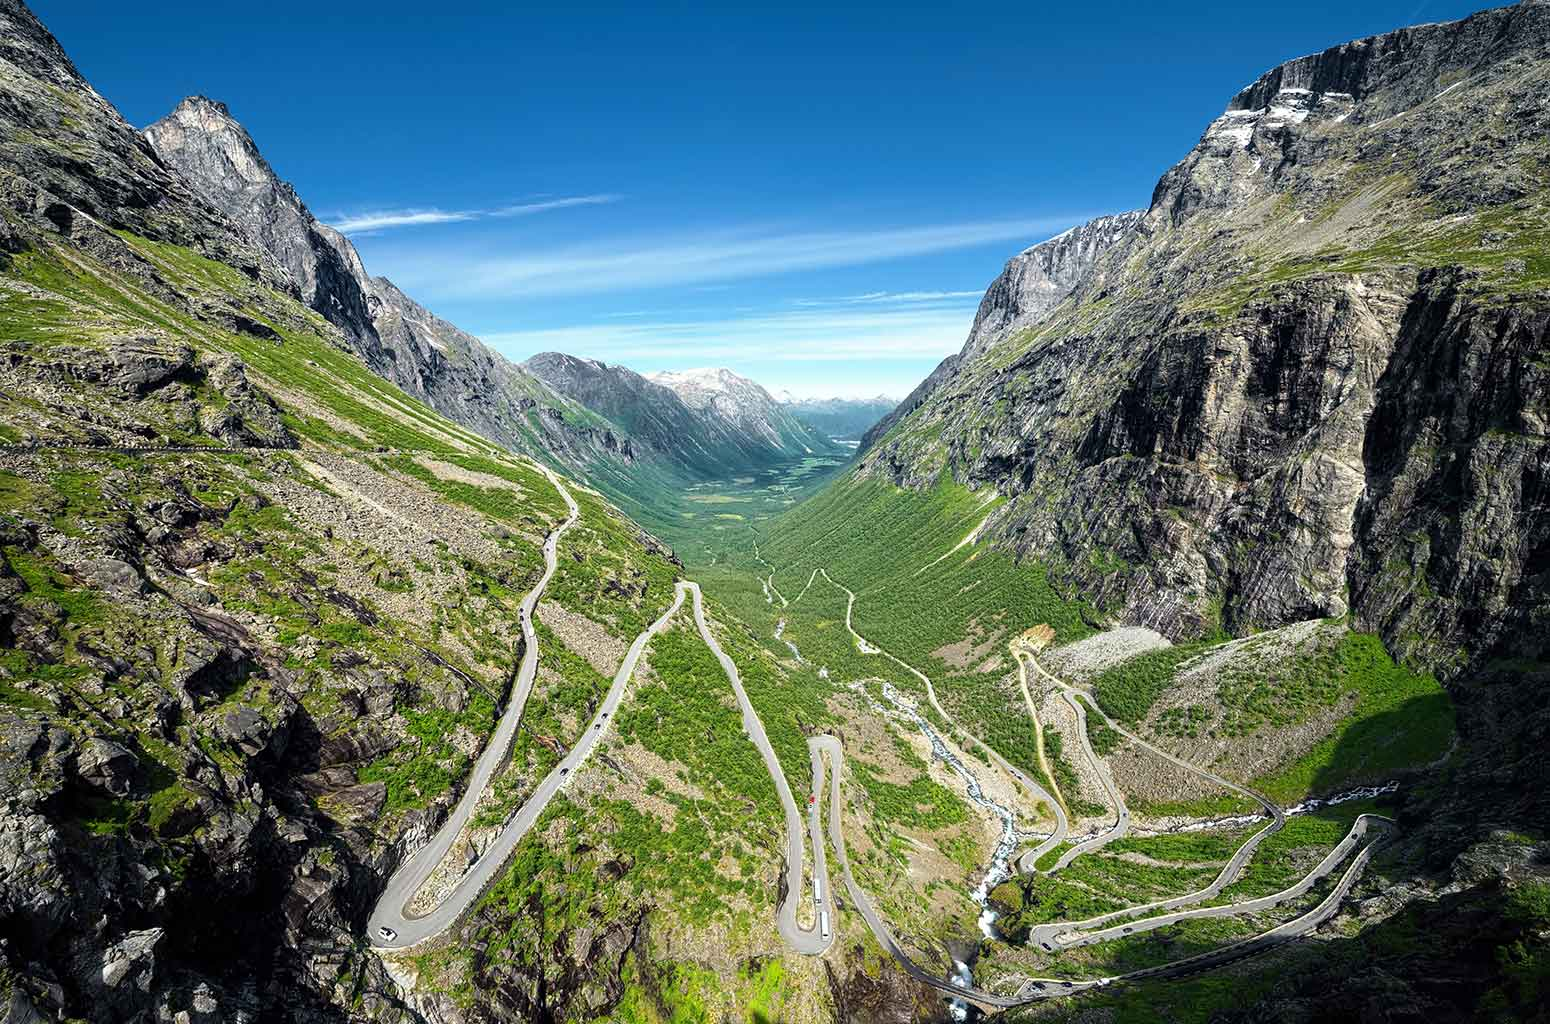 Trollstigen, or Troll Road, and its 11 hairpin bends